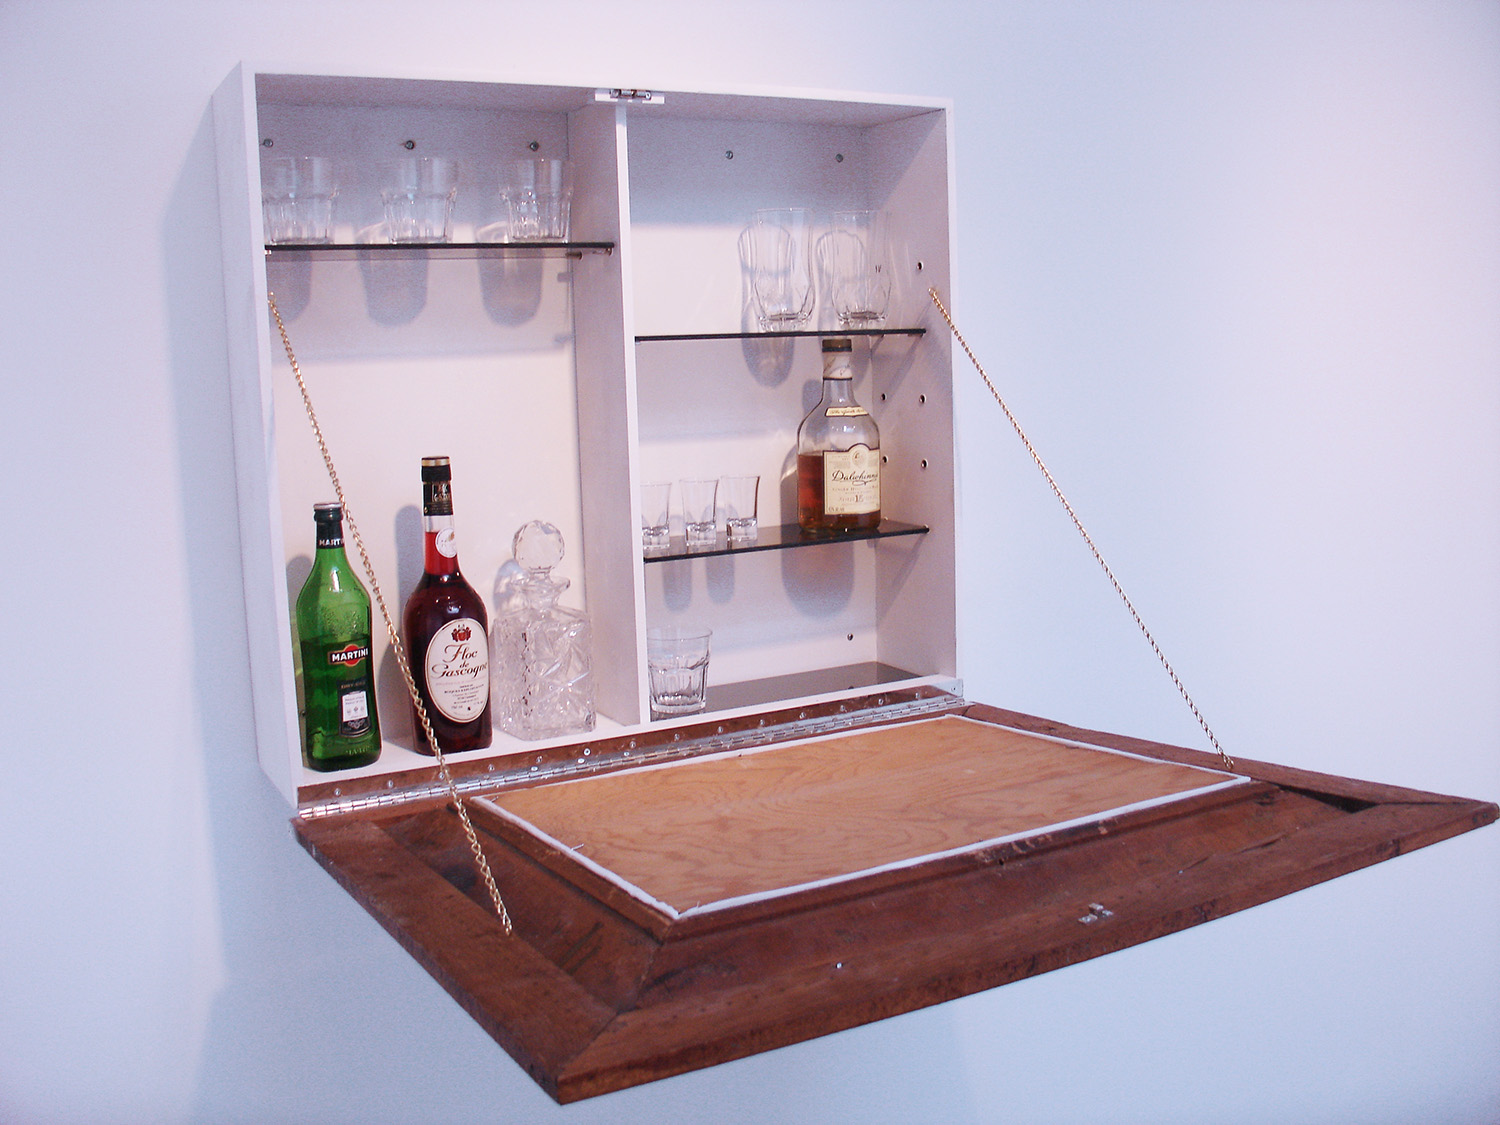 A Bar… (opened) , 2009-10, 27.5 x 31.25 x 8.5 inches, screen-print on masonite, found frame, plywood, glass, whiskey